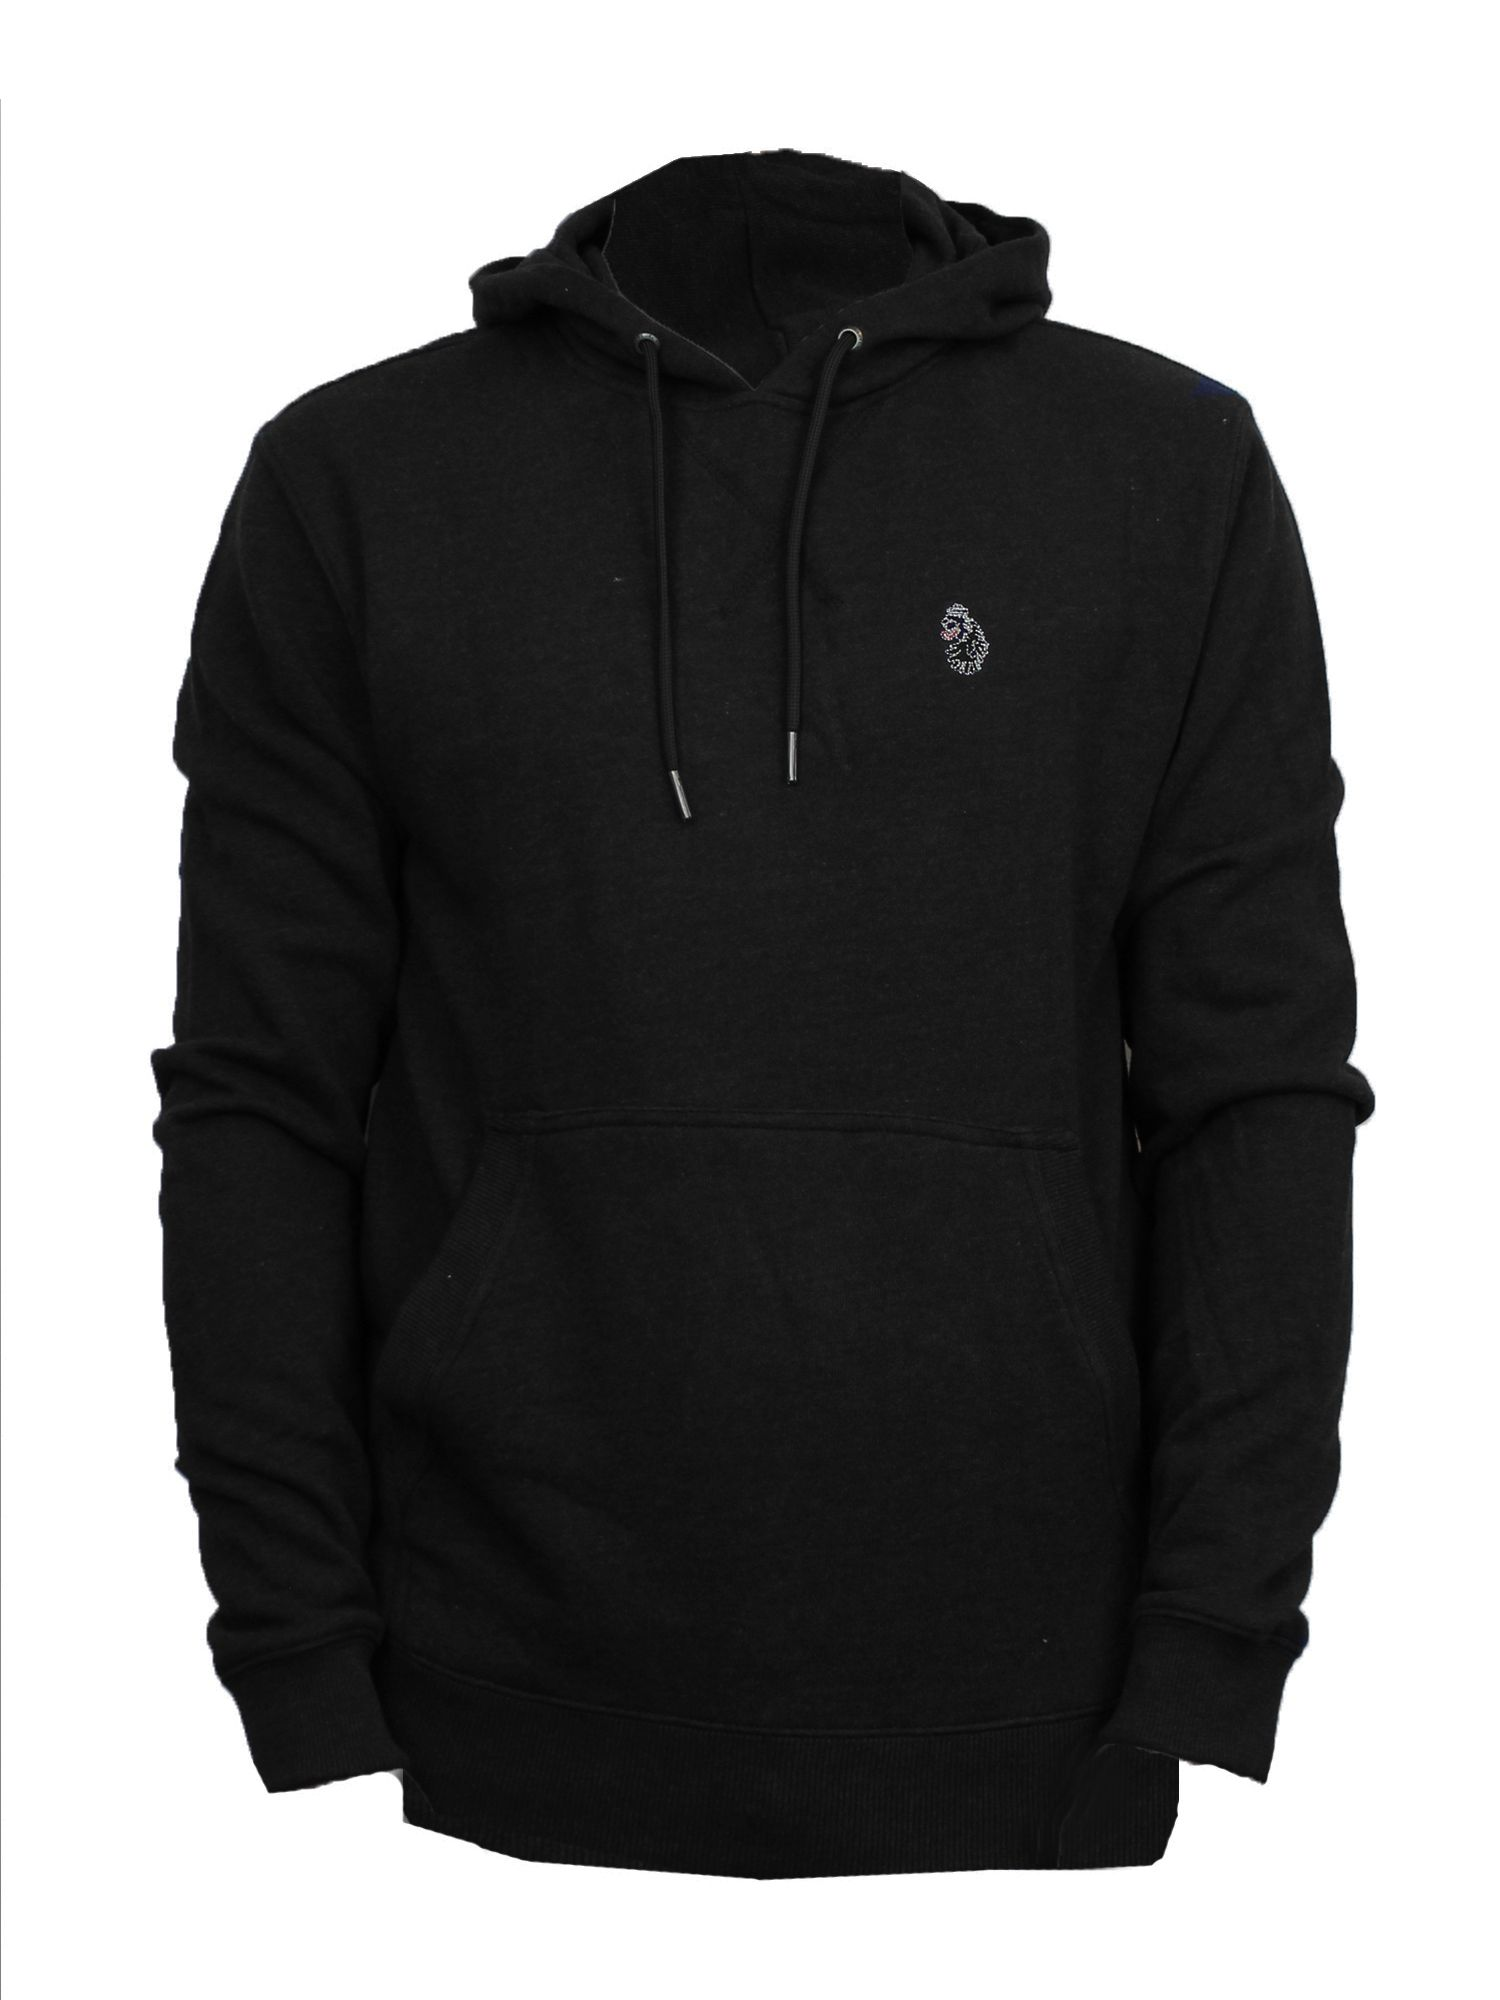 Men's Luke 1977 Neptune pull over hoodie, Black